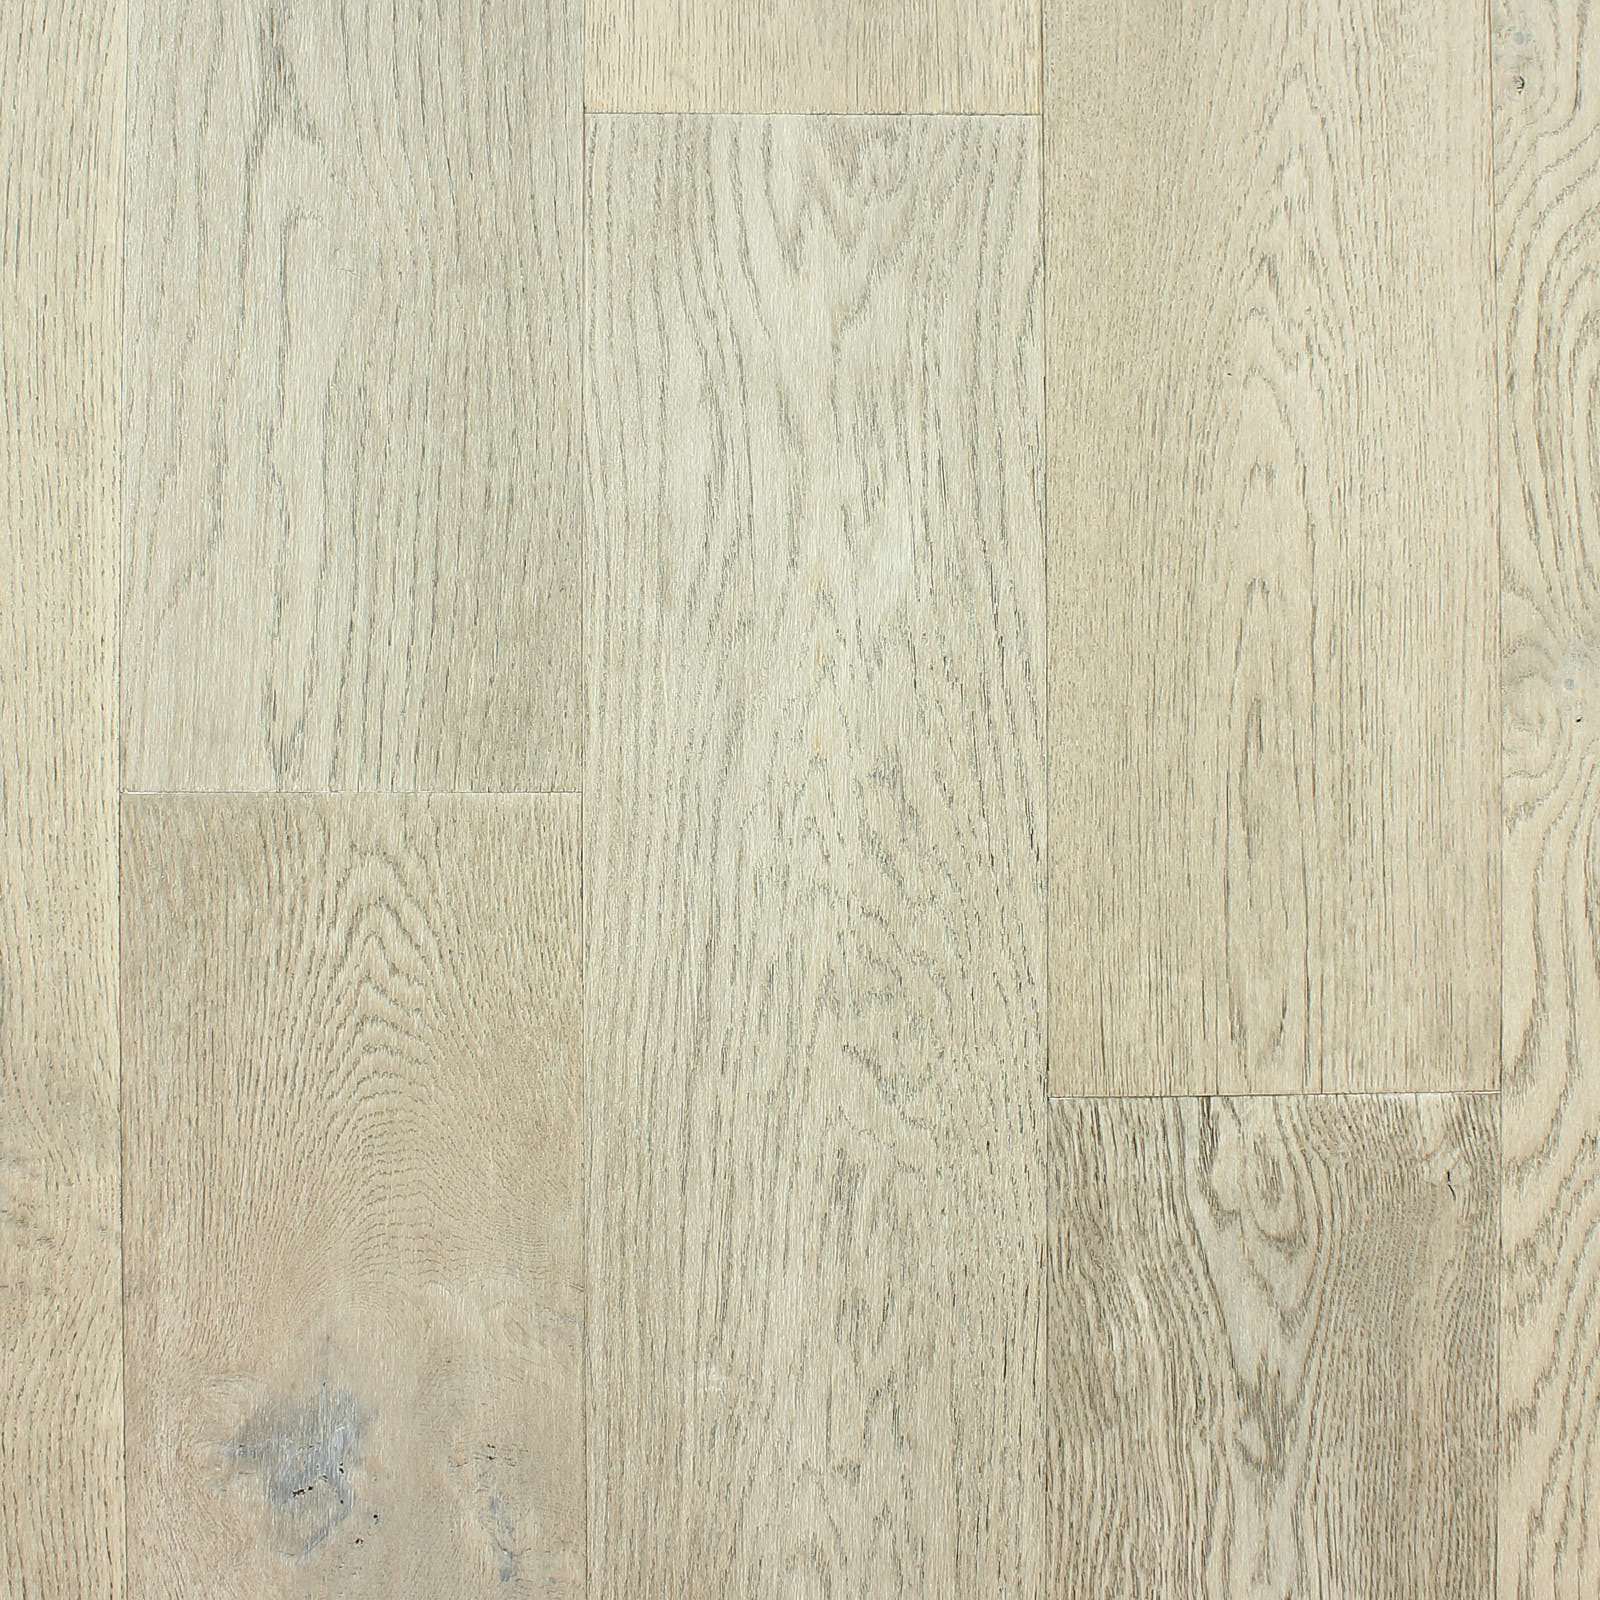 Treasure Island Sand Dollar Engineered Hardwood Flooring